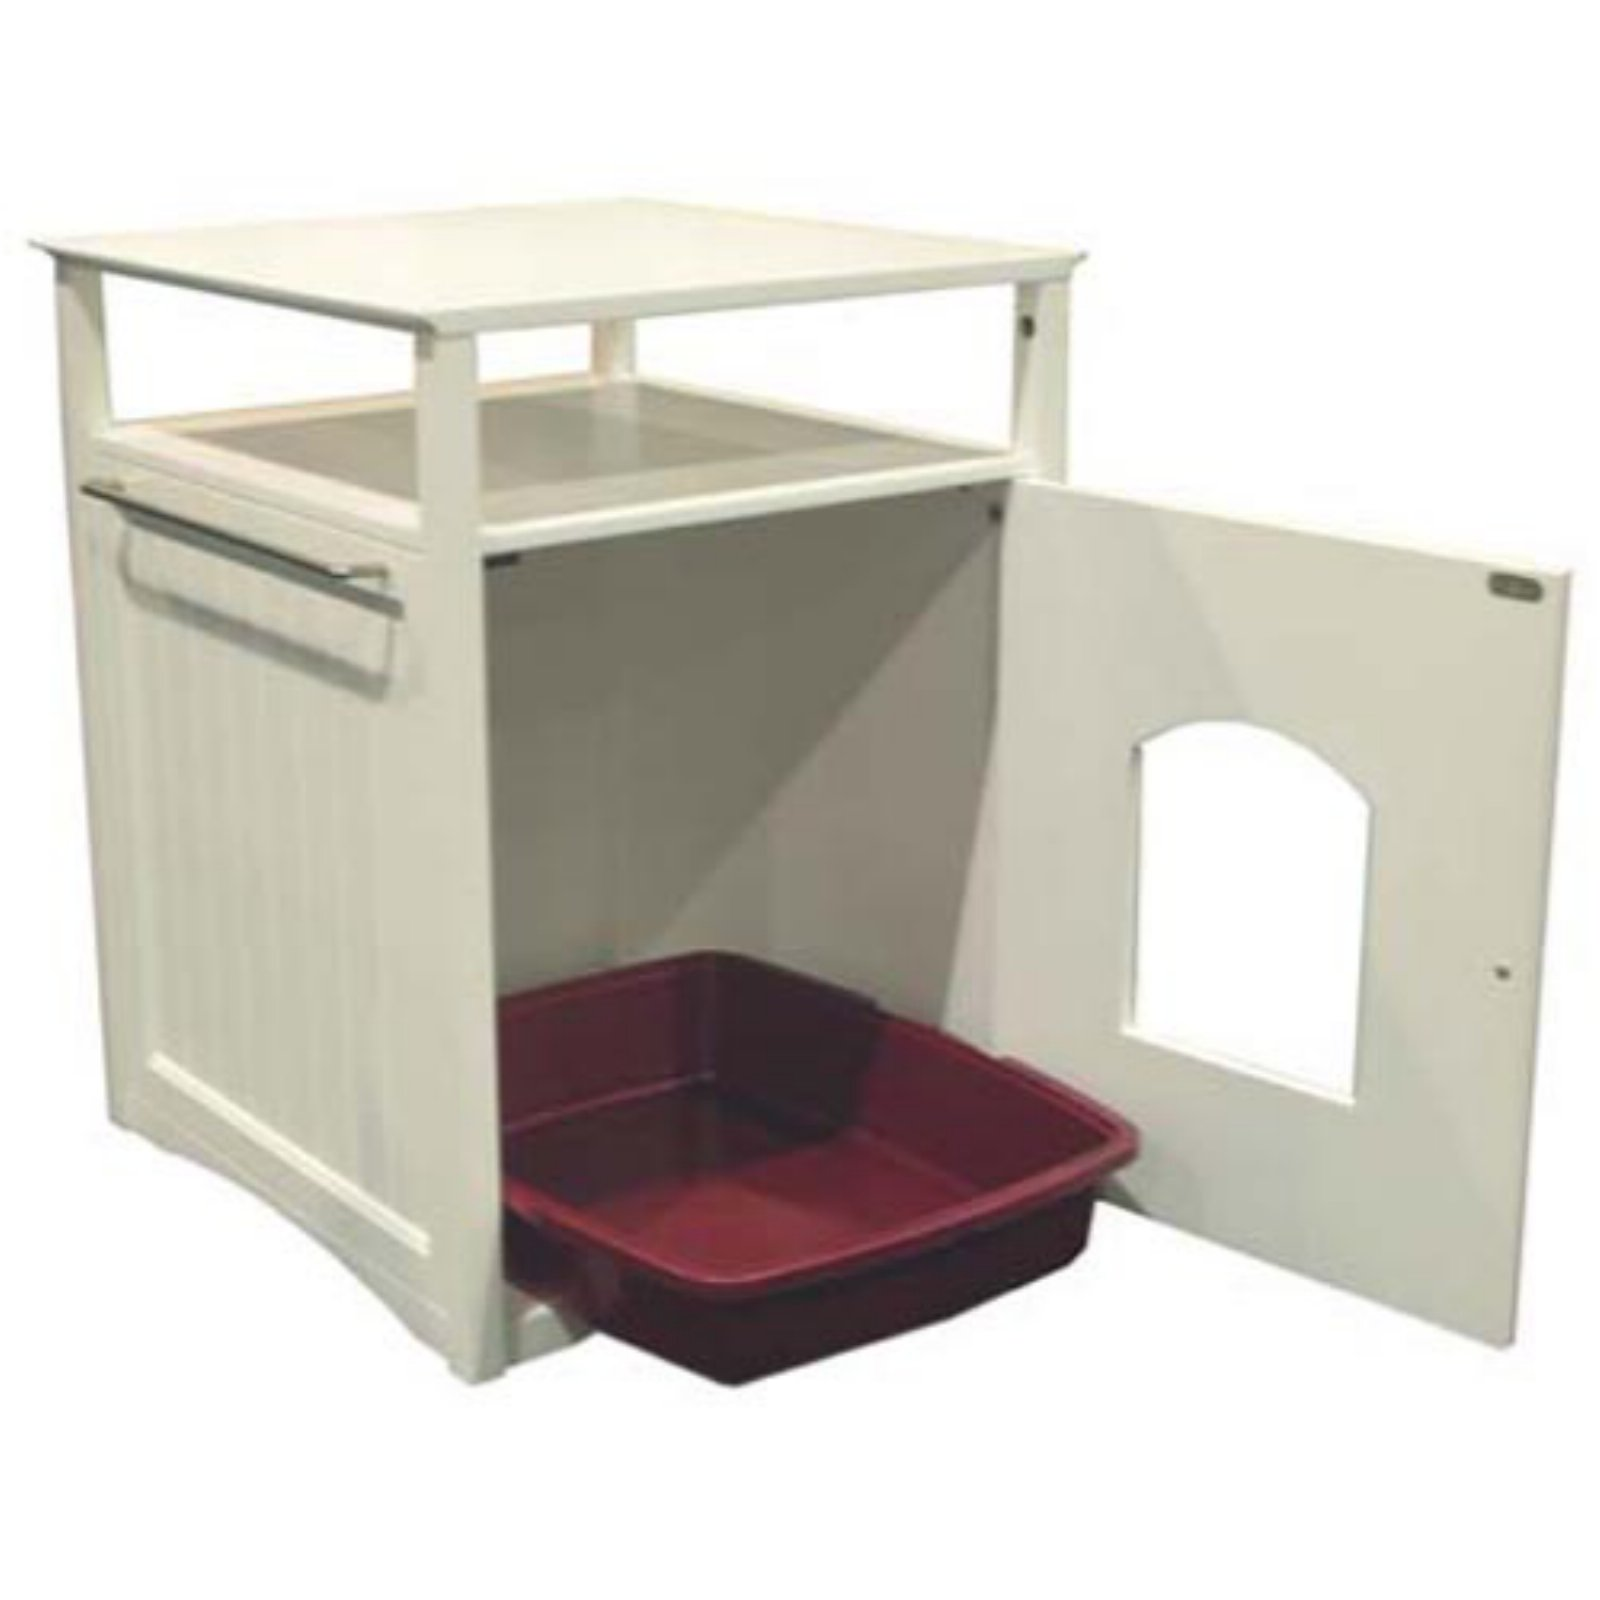 Covered litter boxes for small spaces lidded cat litter box images covered corner litter box - Litter boxes for small spaces paint ...